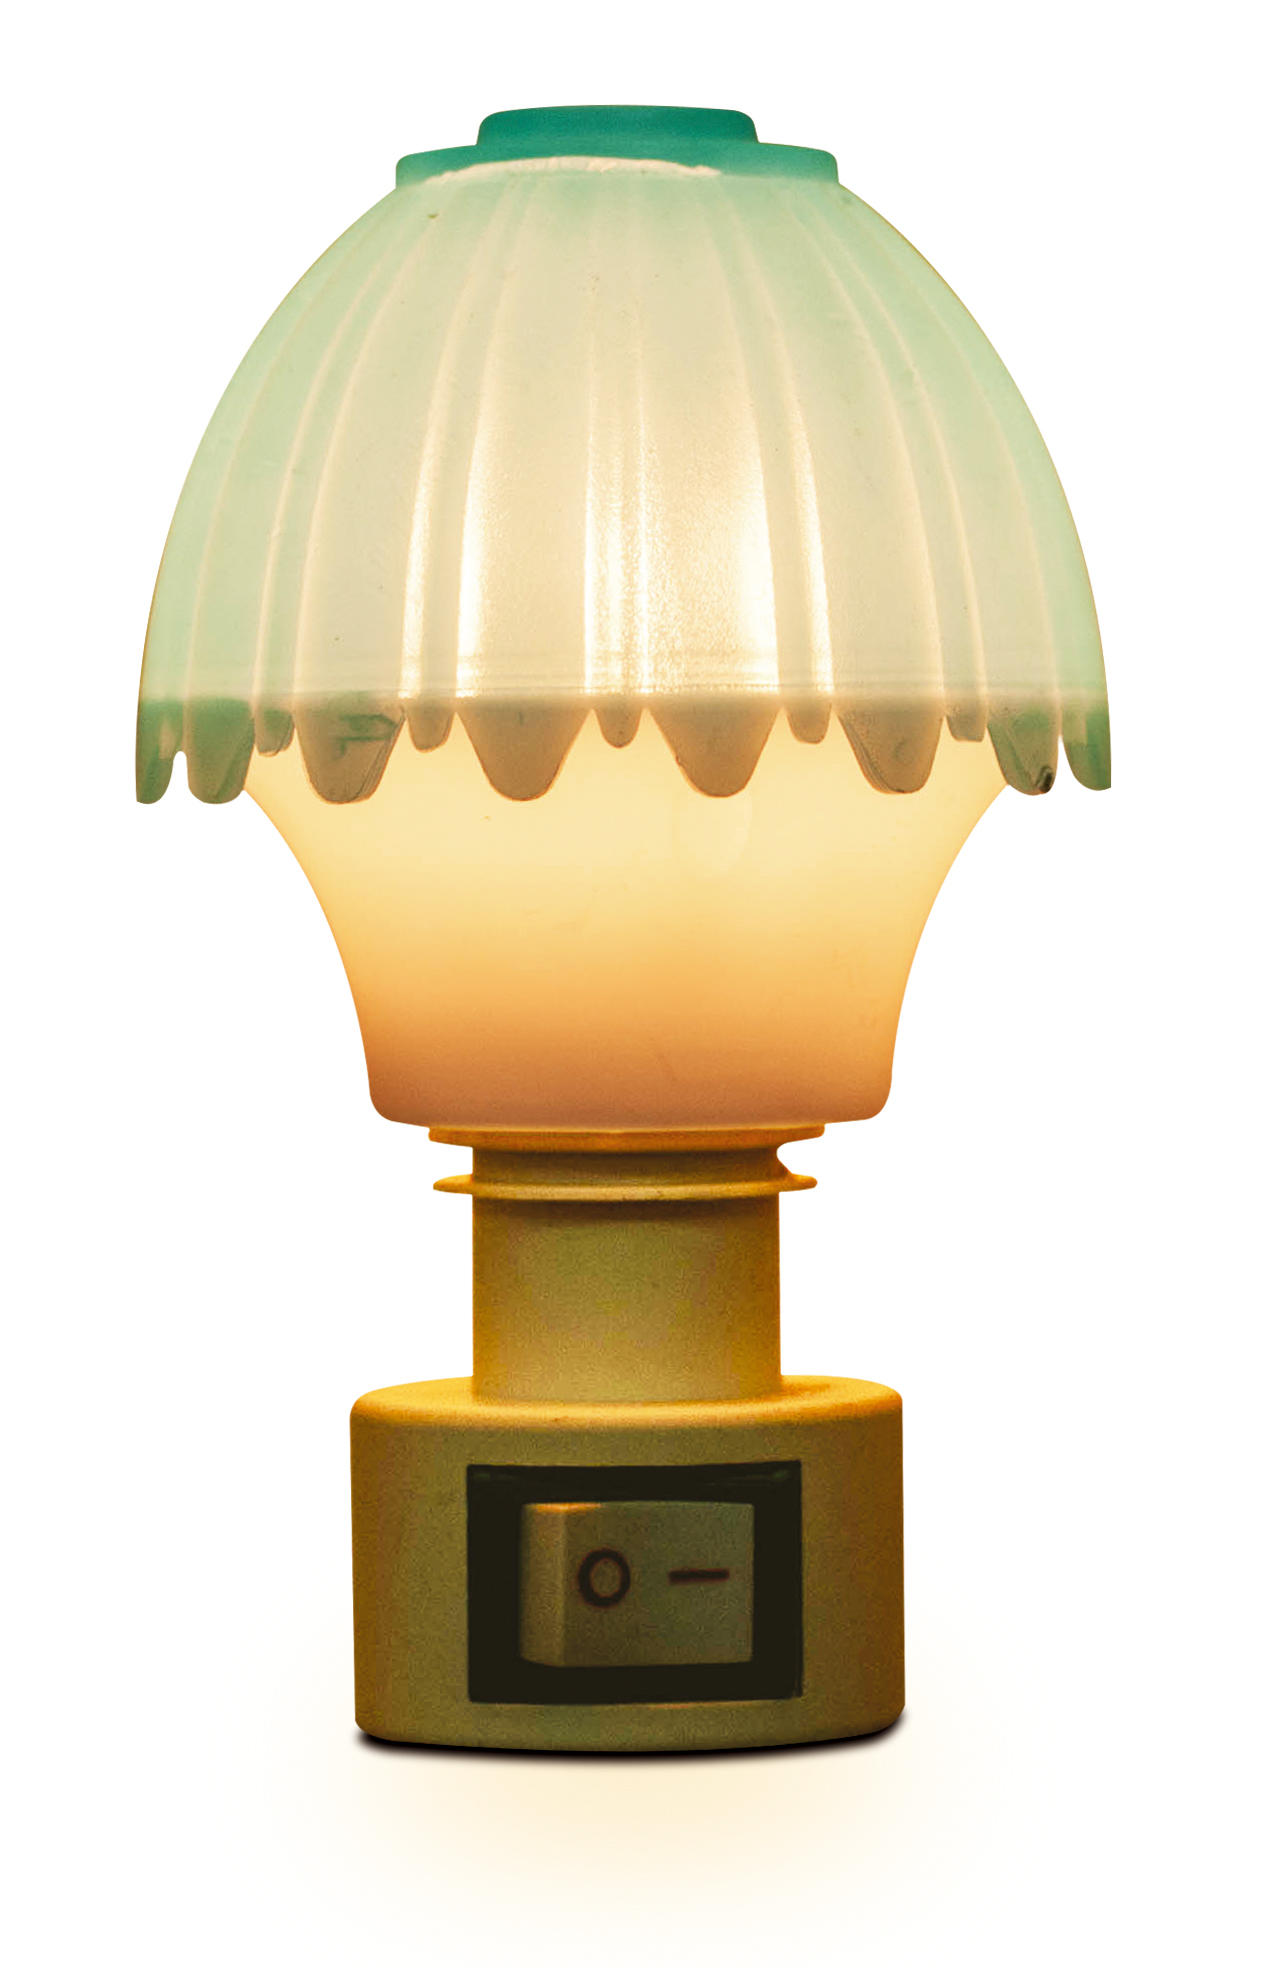 OEM A03 Beautiful table lamp switch nightlight CE ROSH approved HOT SALE promotional gift items